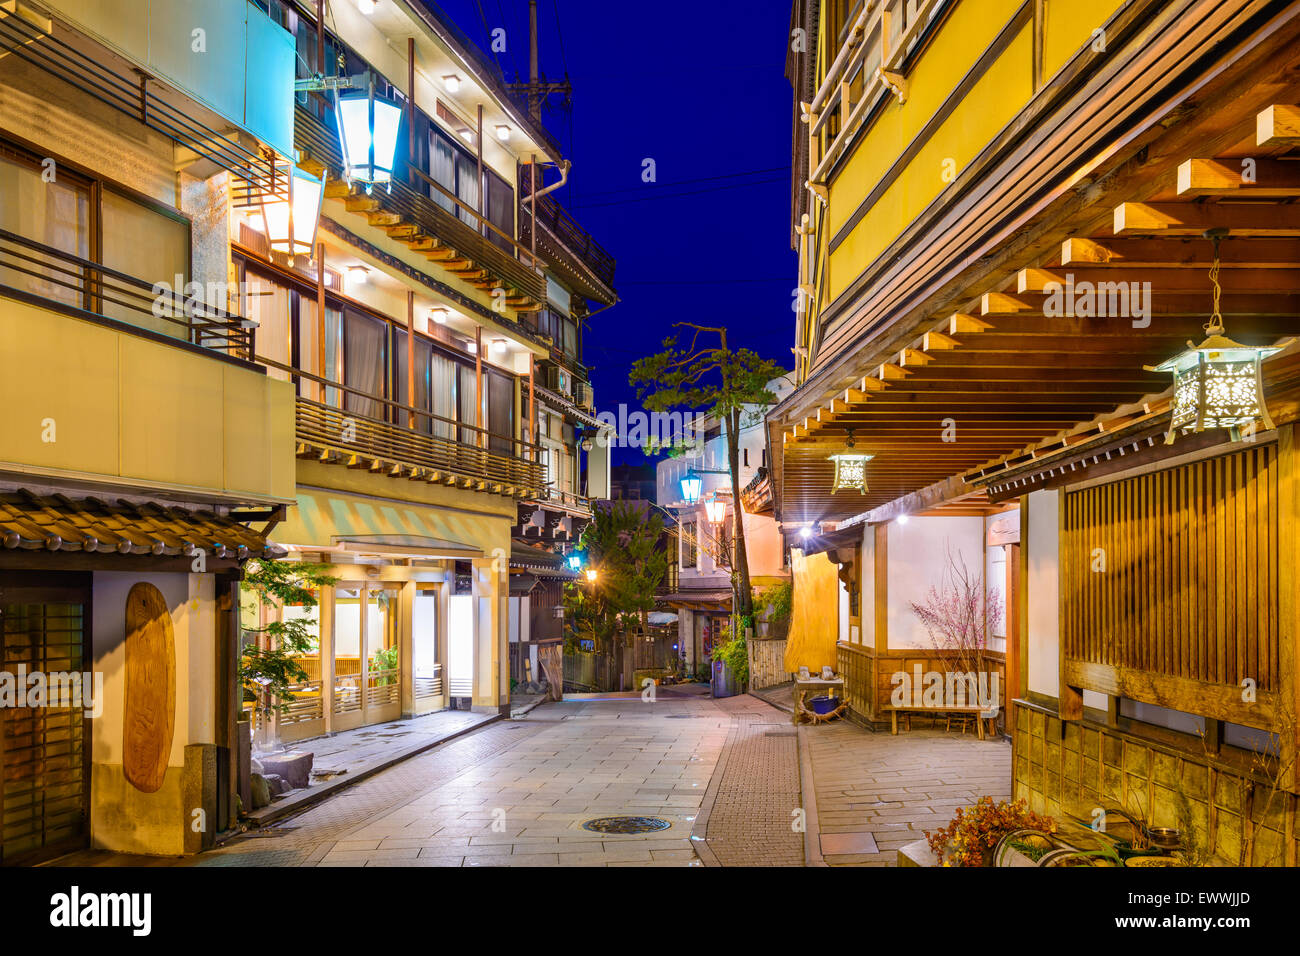 Shibu Onsen, Nagano, Japan historic hot springs resorts town. - Stock Image